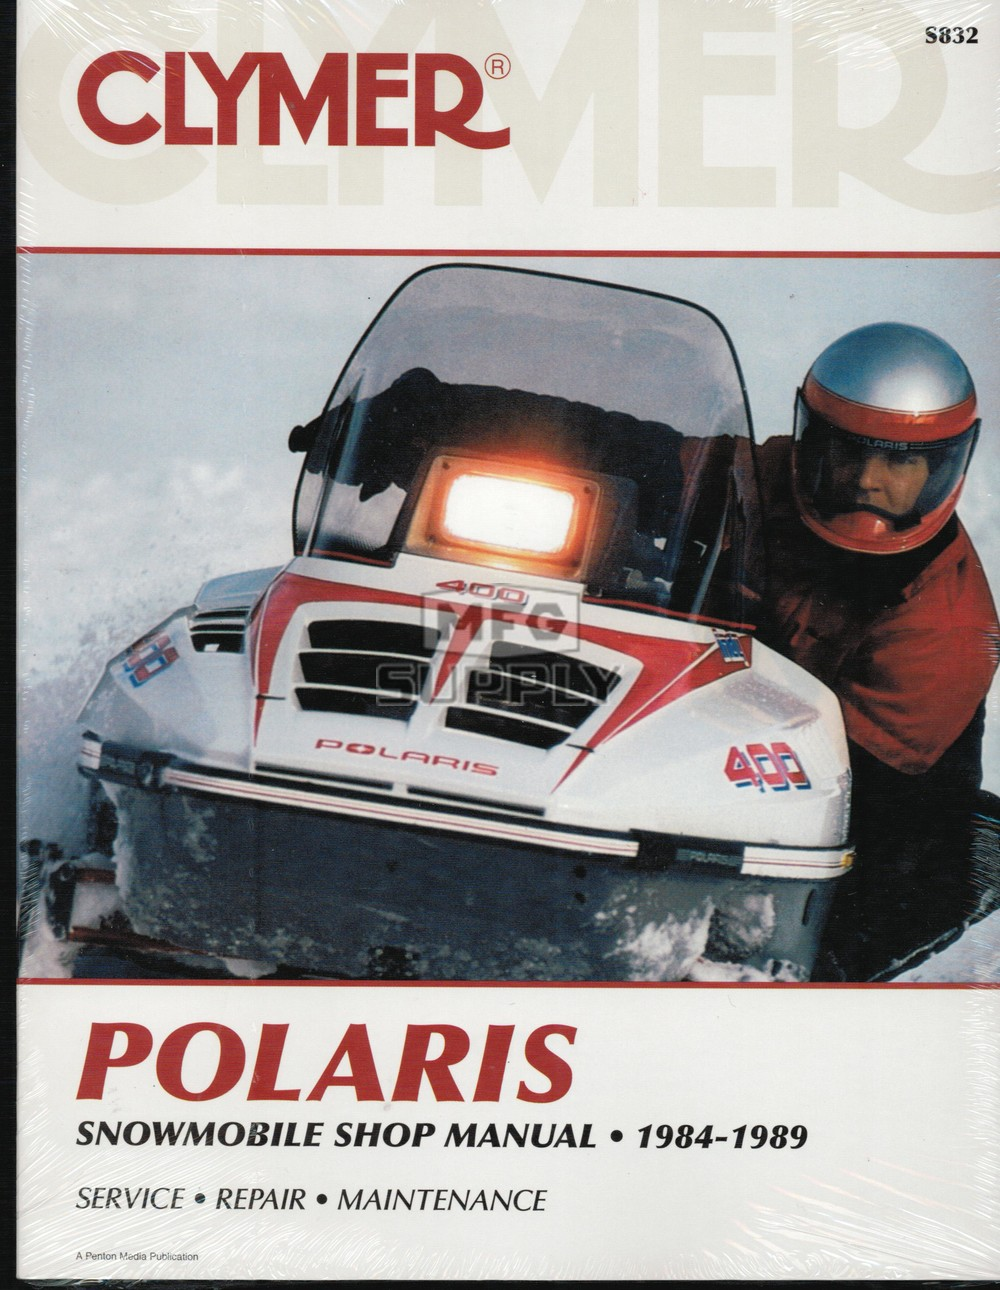 cs832 84 89 polaris snowmobile shop manual snowmobile parts cs832 84 89 polaris snowmobile shop manual